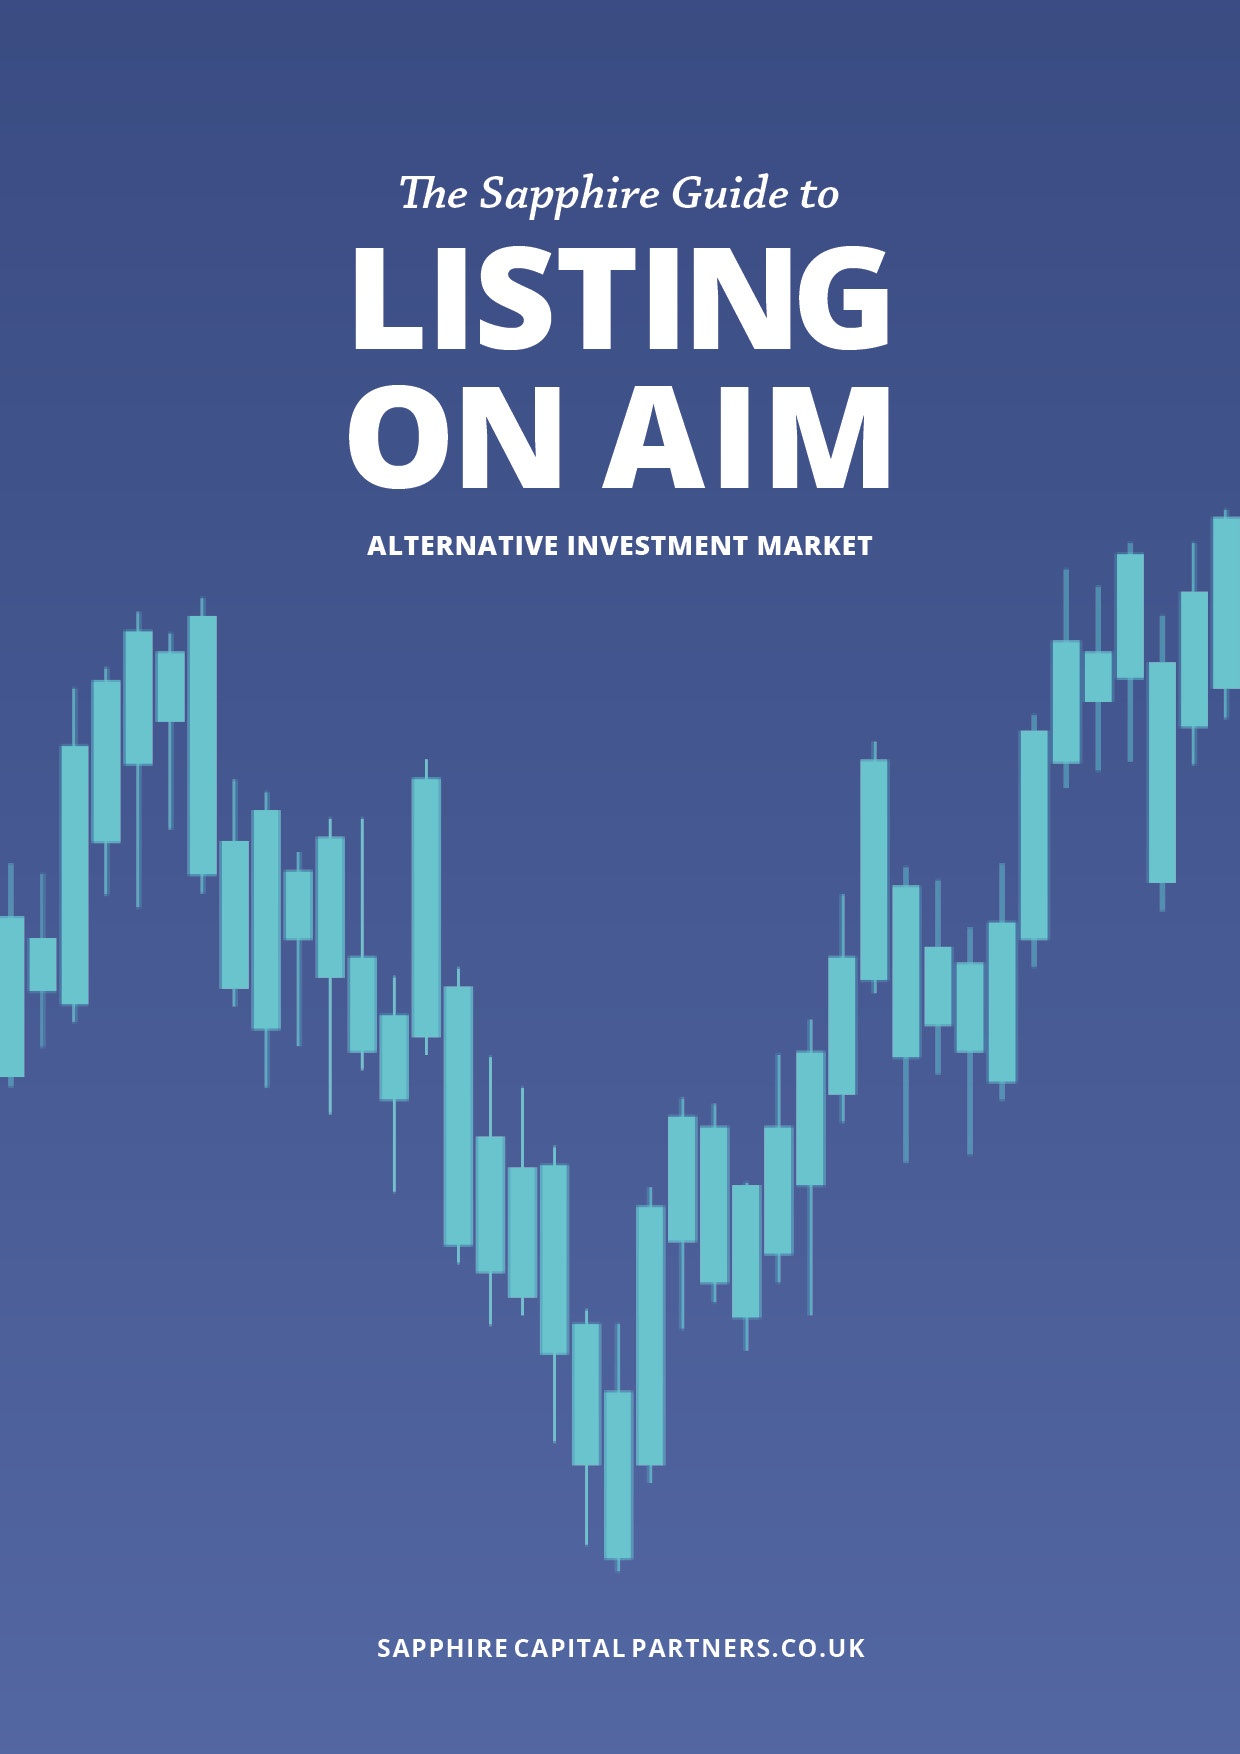 The Sapphire Guide to Listing on AIM